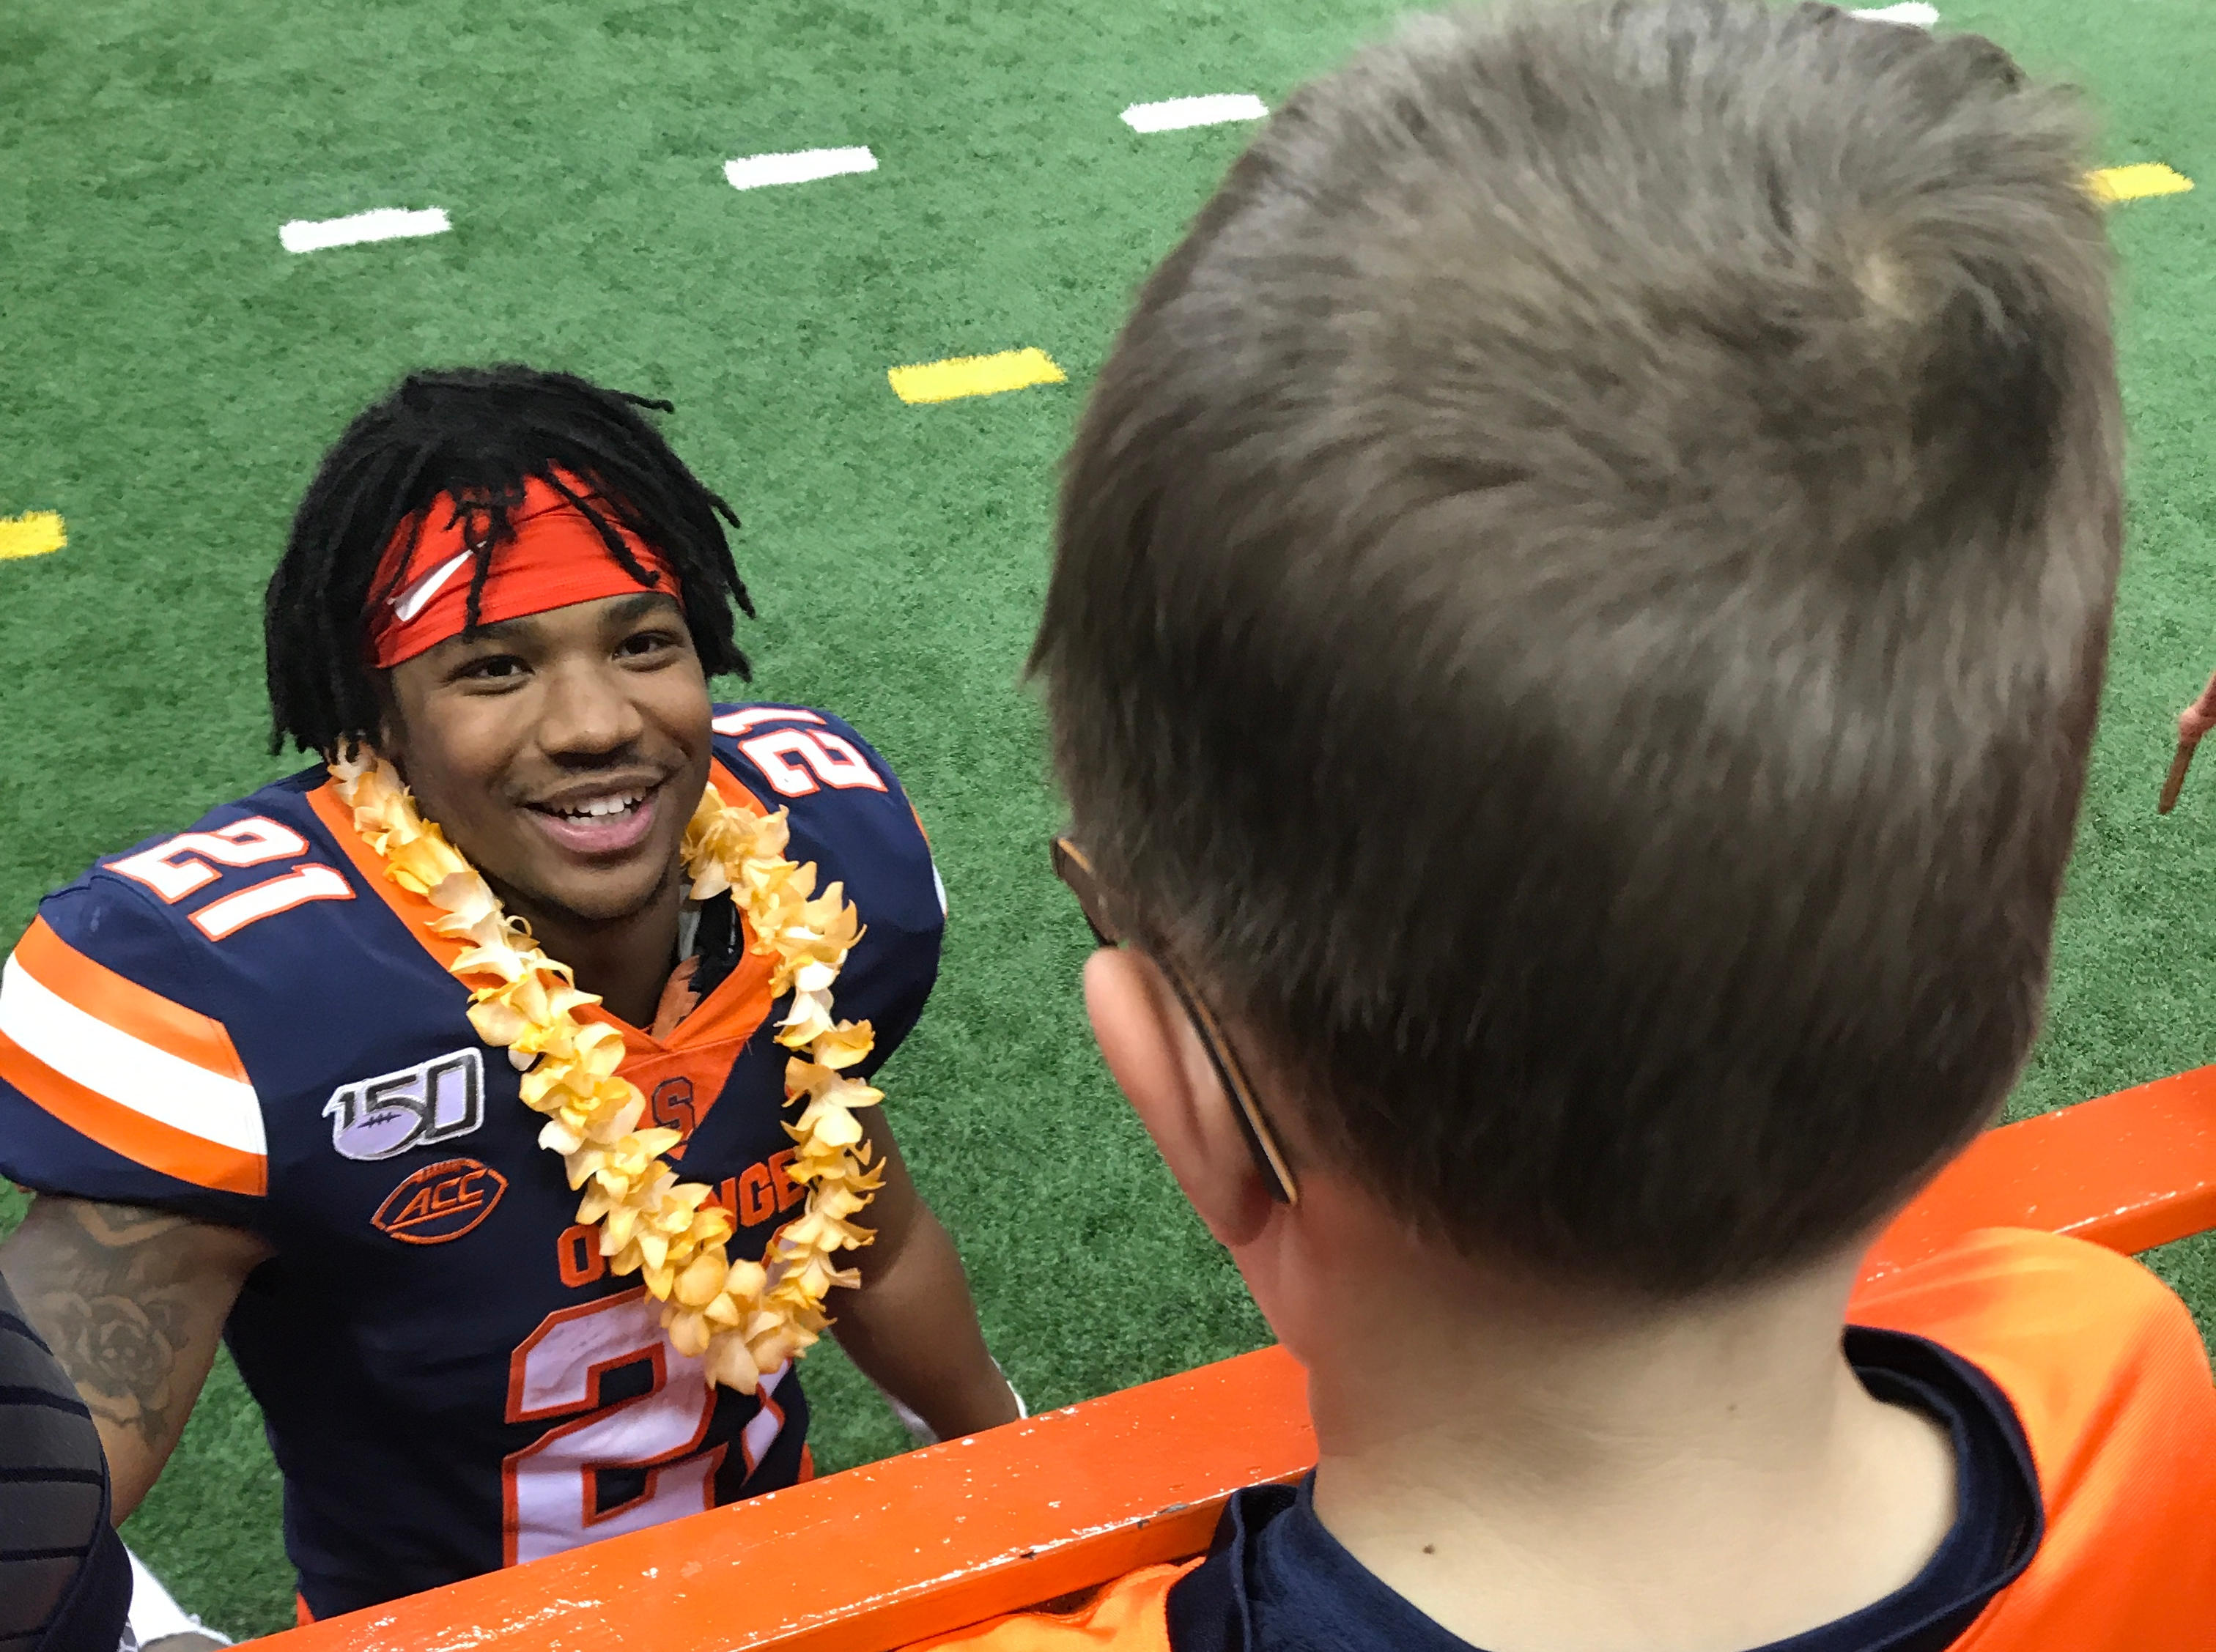 SU superfan with autism has a rough day at the dome; it's a lesson for everyone